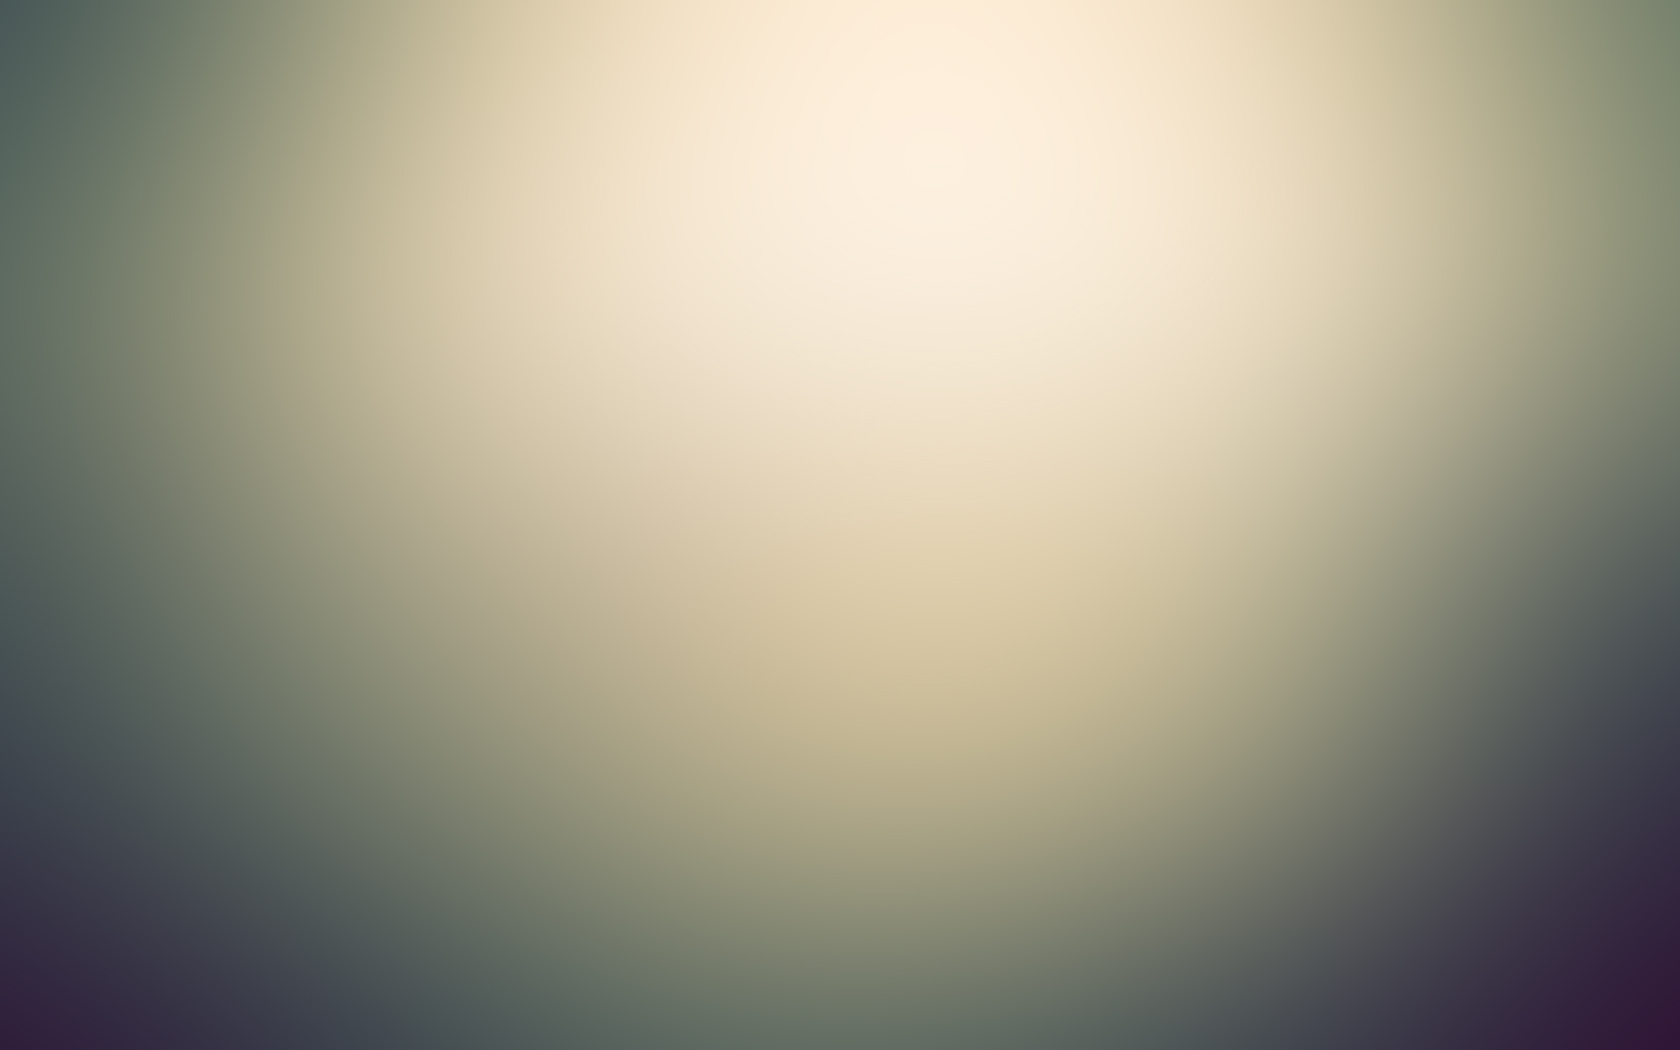 ... Light Gray Surface wallpapers | Clean Light Gray Surface stock photos